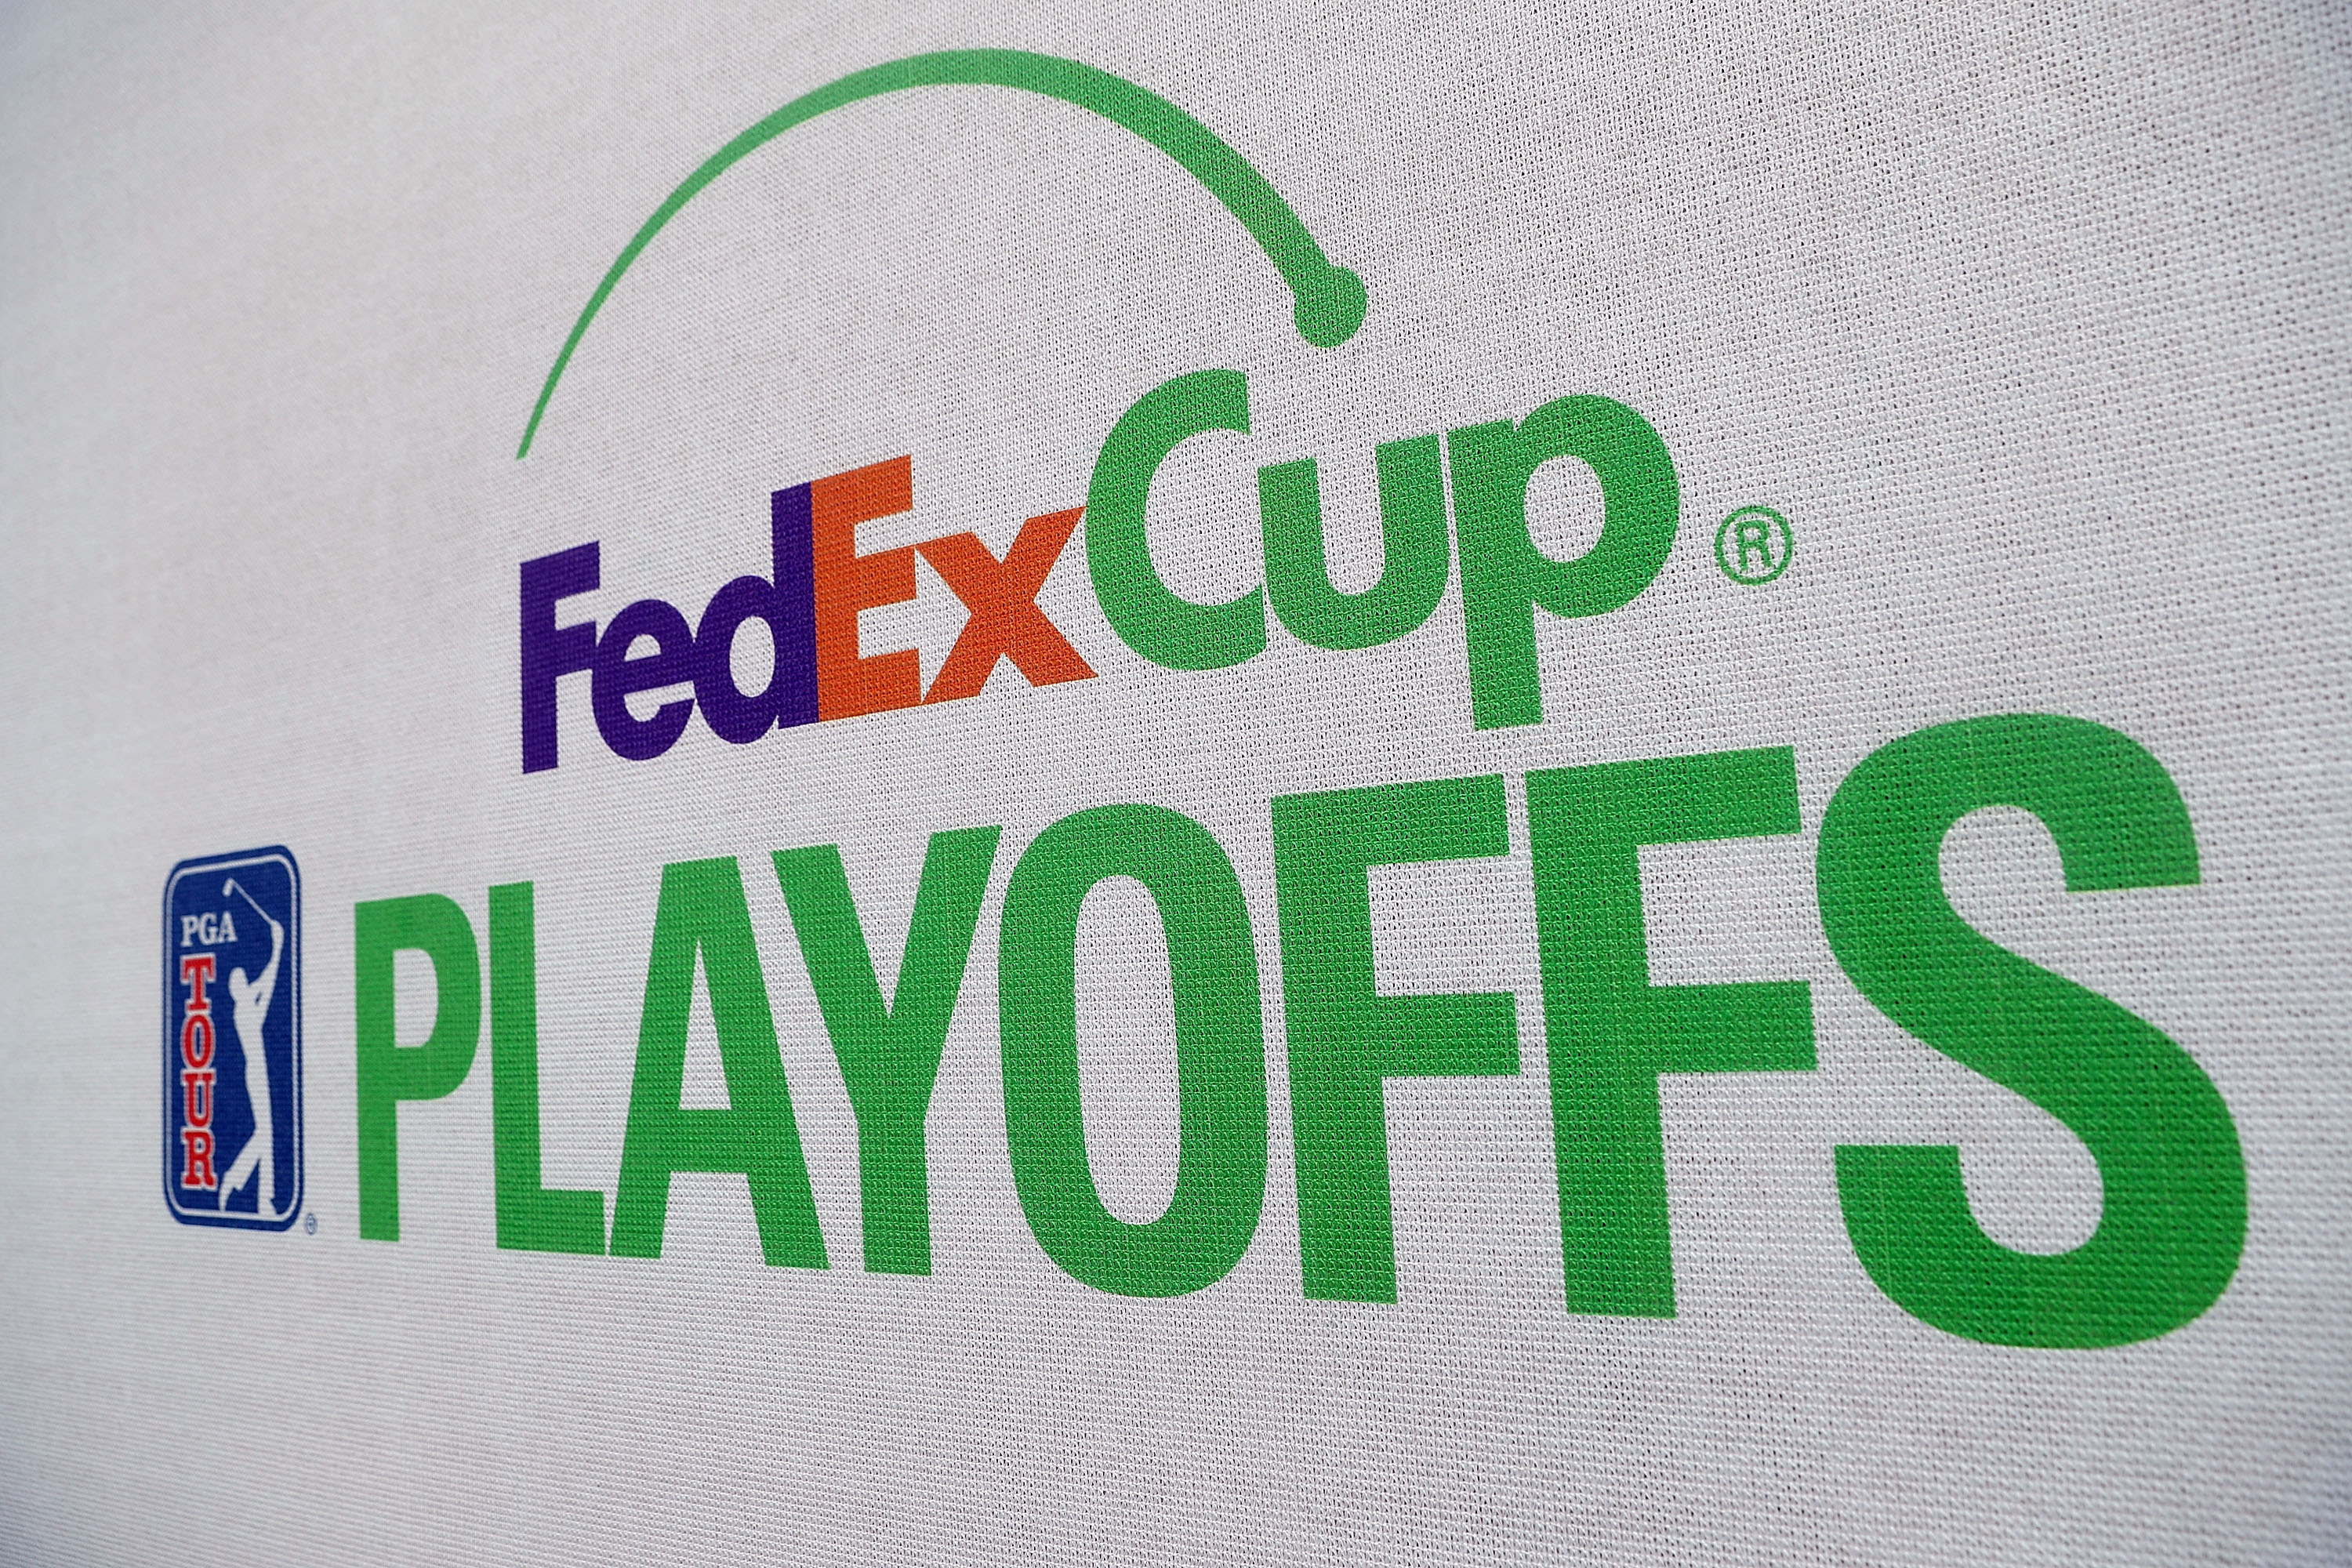 The Northern Trust Five Sleepers At Fedex Cup Playoff Opener